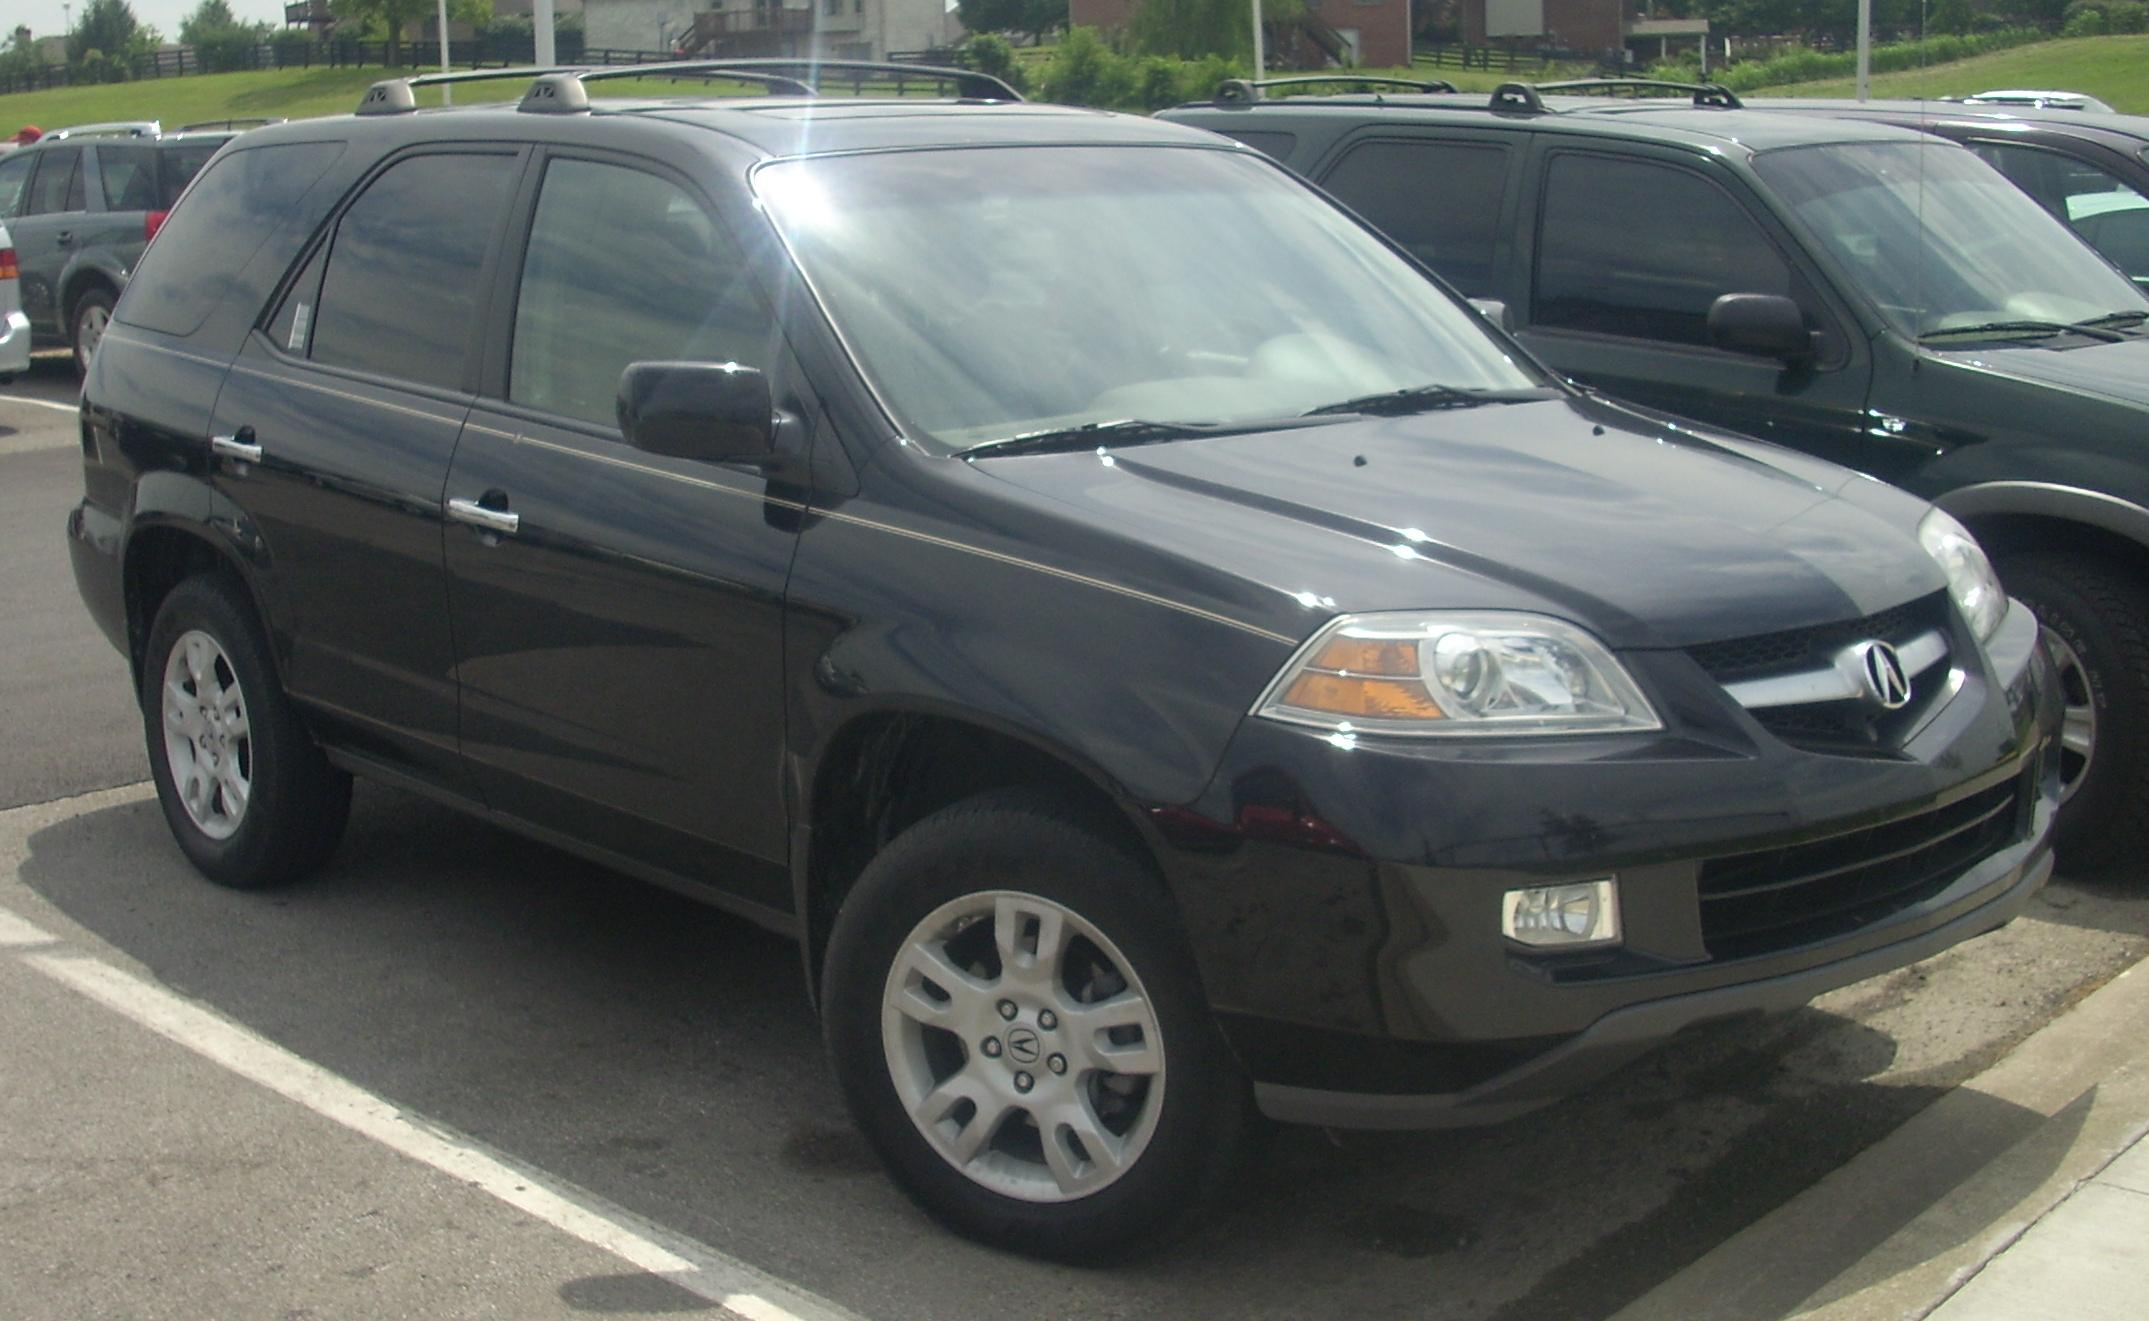 2004 Acura Mdx  pictures information and specs  AutoDatabasecom